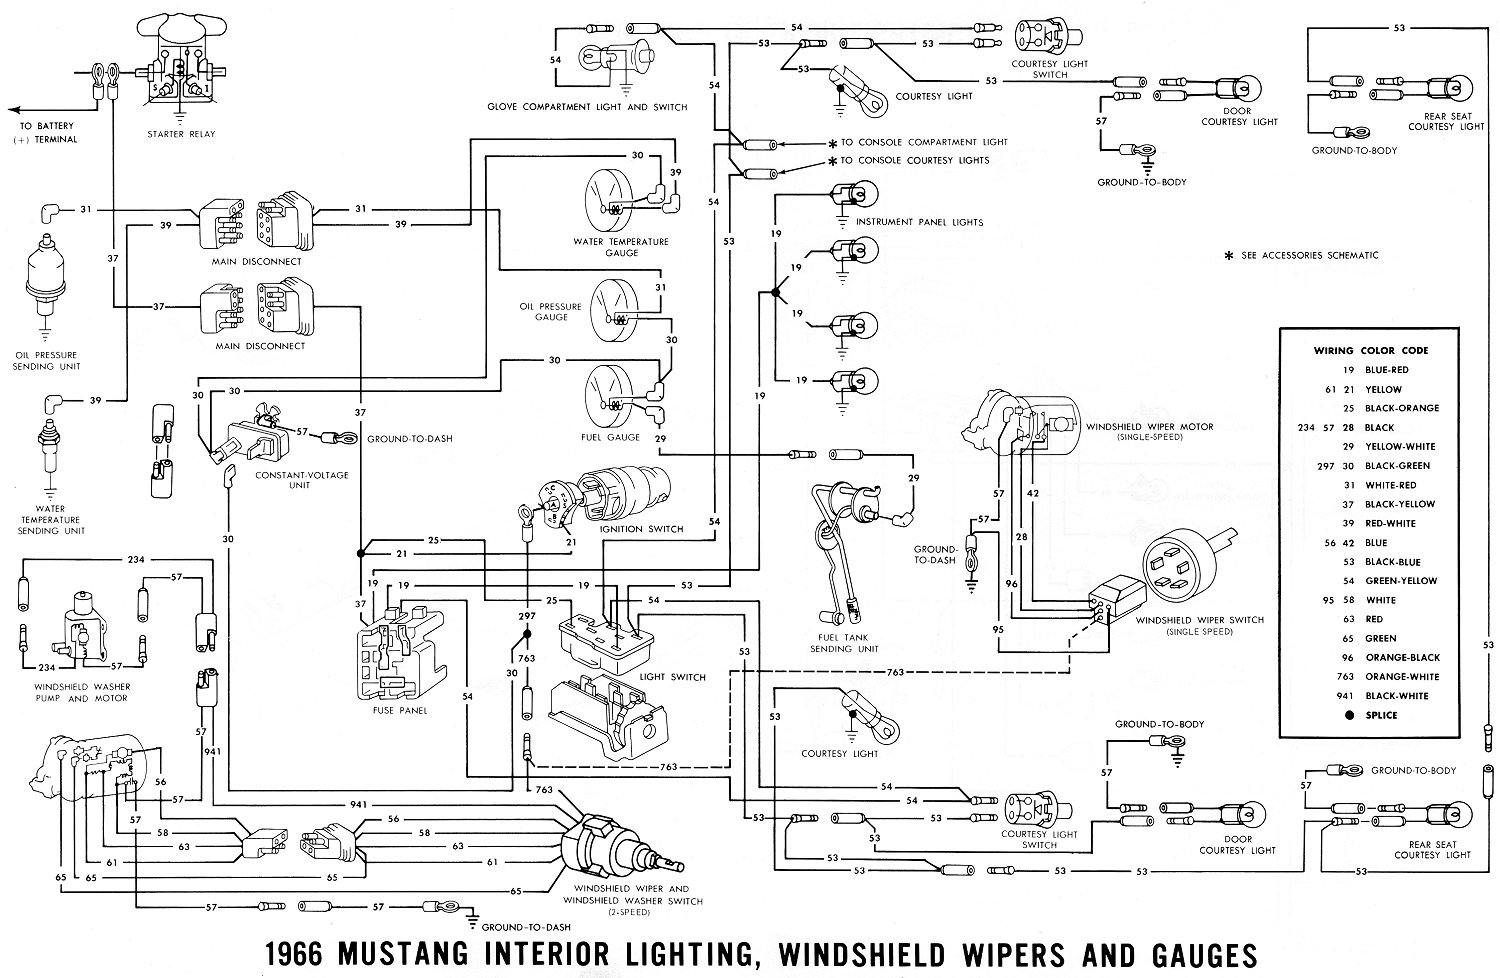 66 wiring harness diagram ford mustang diy wiring diagrams u2022 rh aviomar co Ford 2000 Tractor Parts Diagram Ford 2000 Tractor Parts Diagram